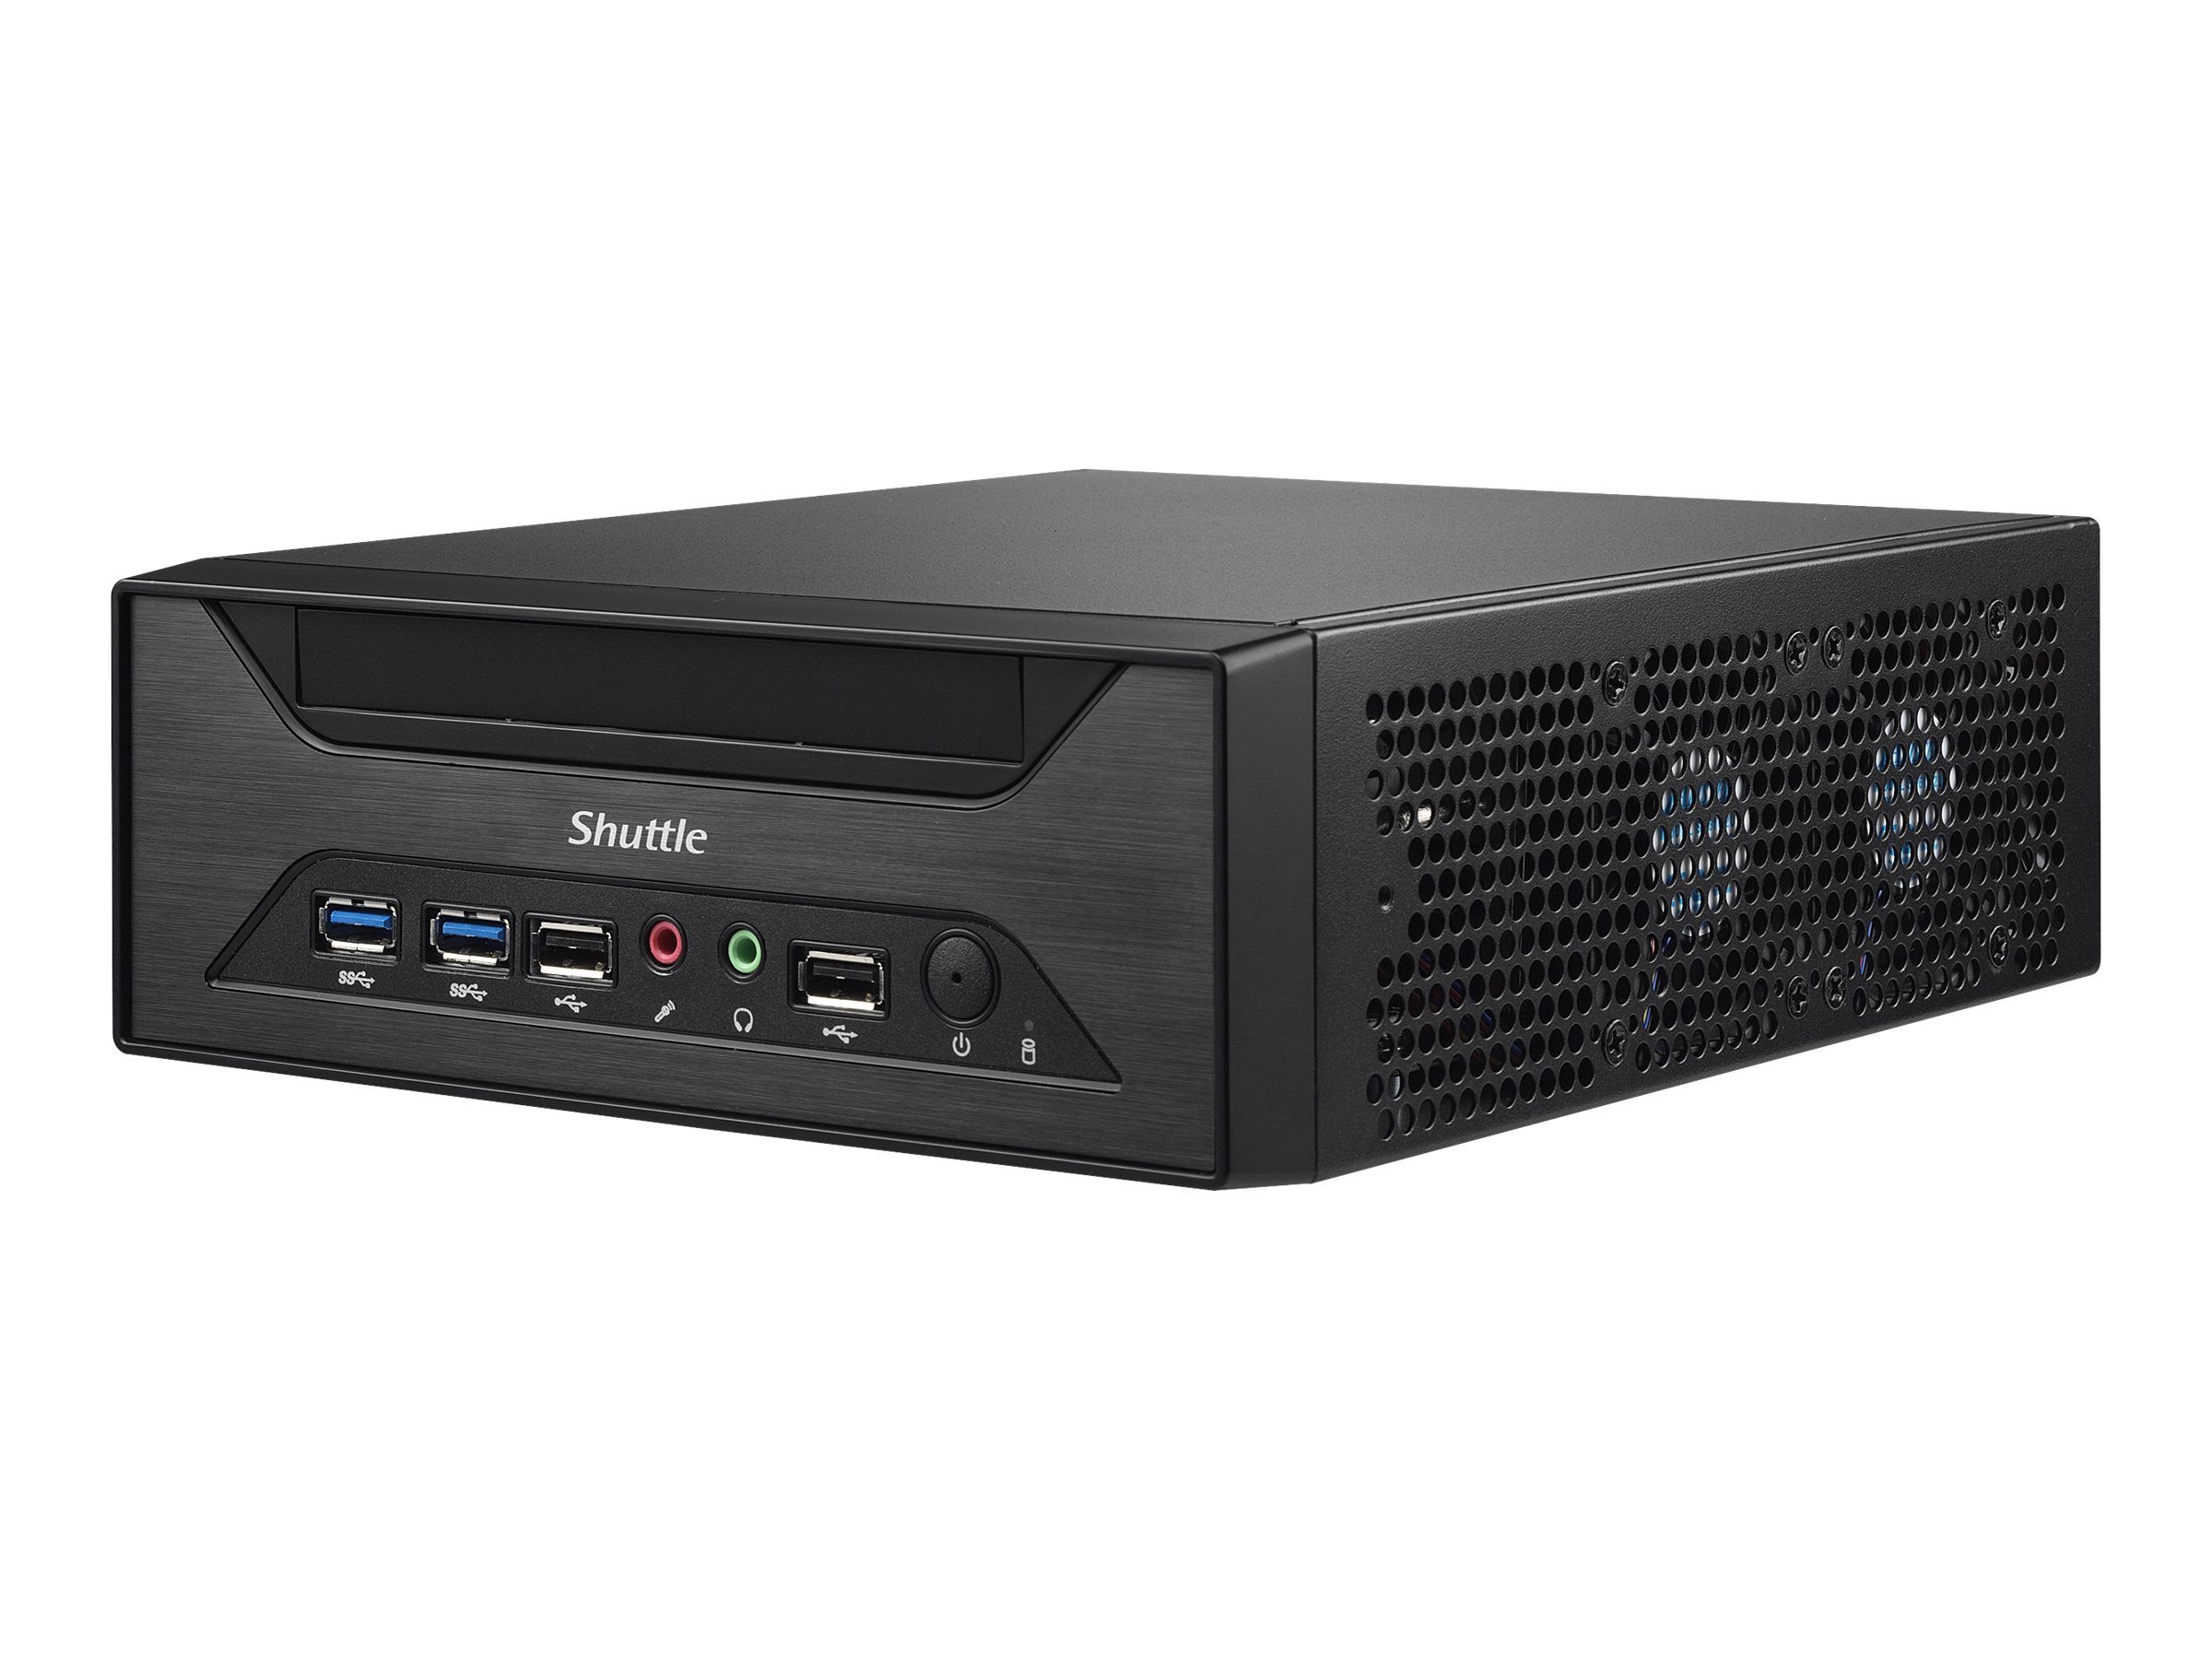 Shuttle XH81 - Barebone - Slim-PC - LGA1150-Sockel - Intel H81 Express - GigE